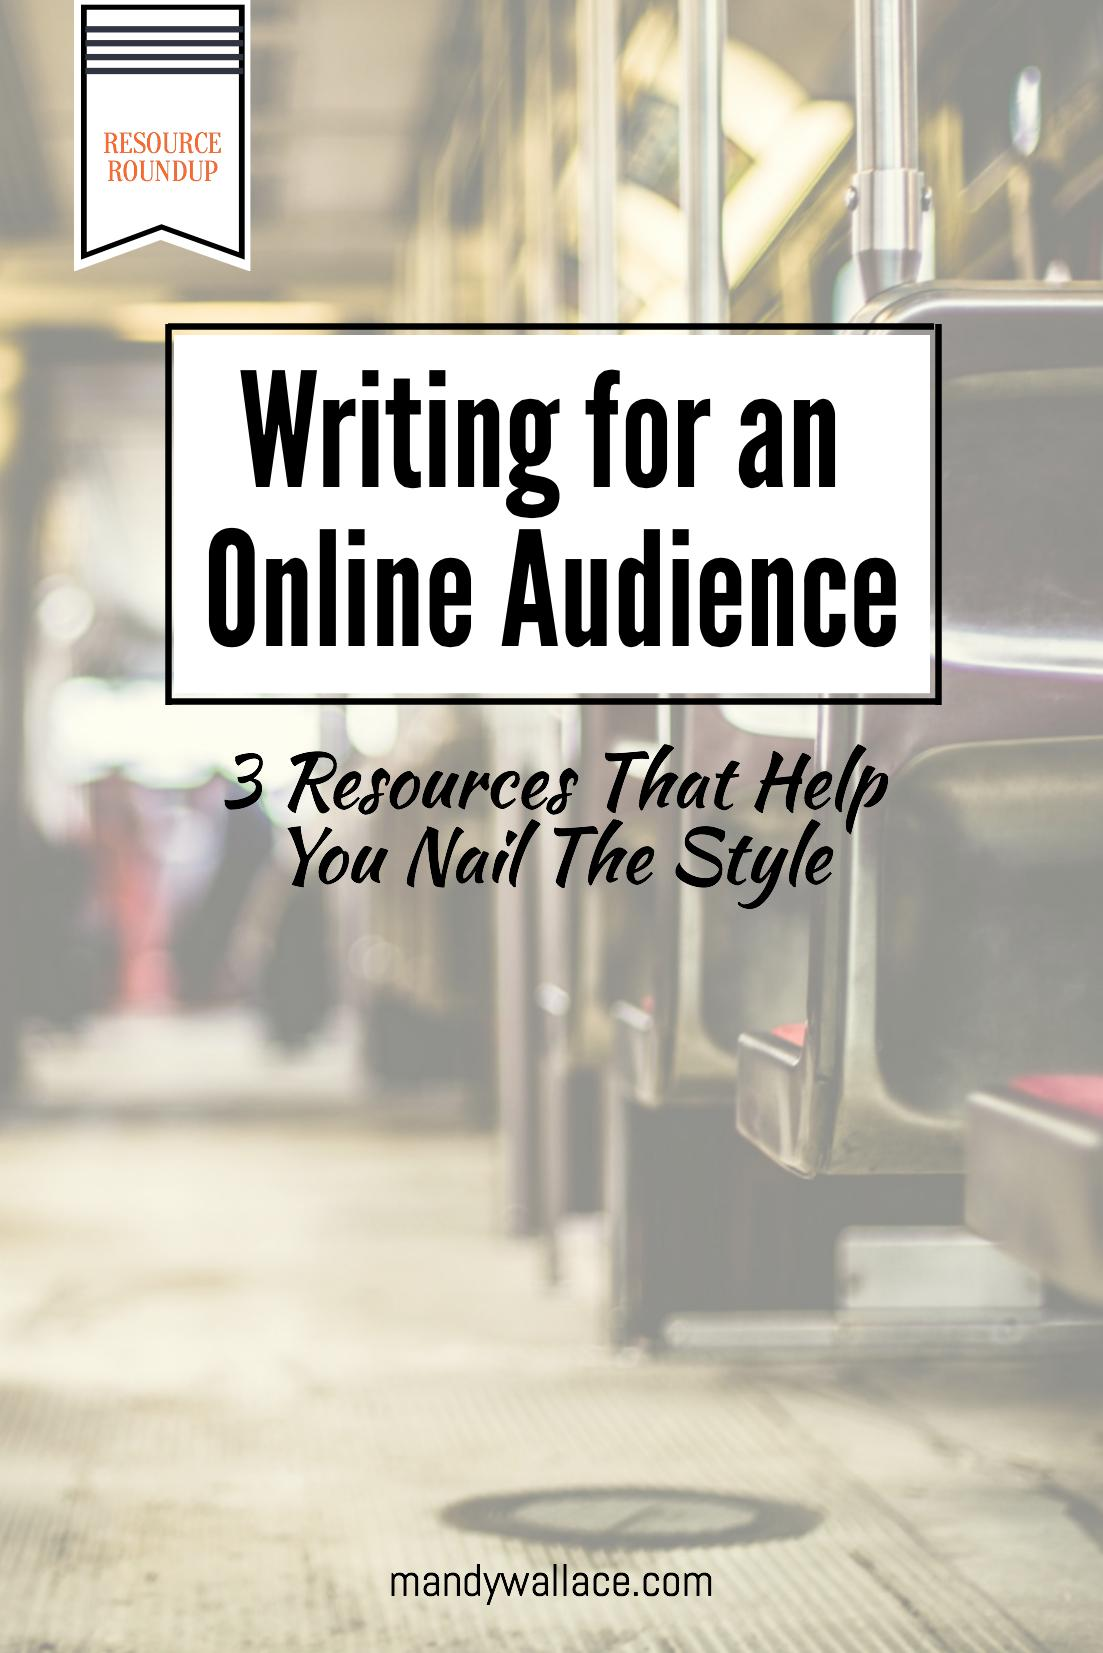 writing for an online audience resources to help you nail the style